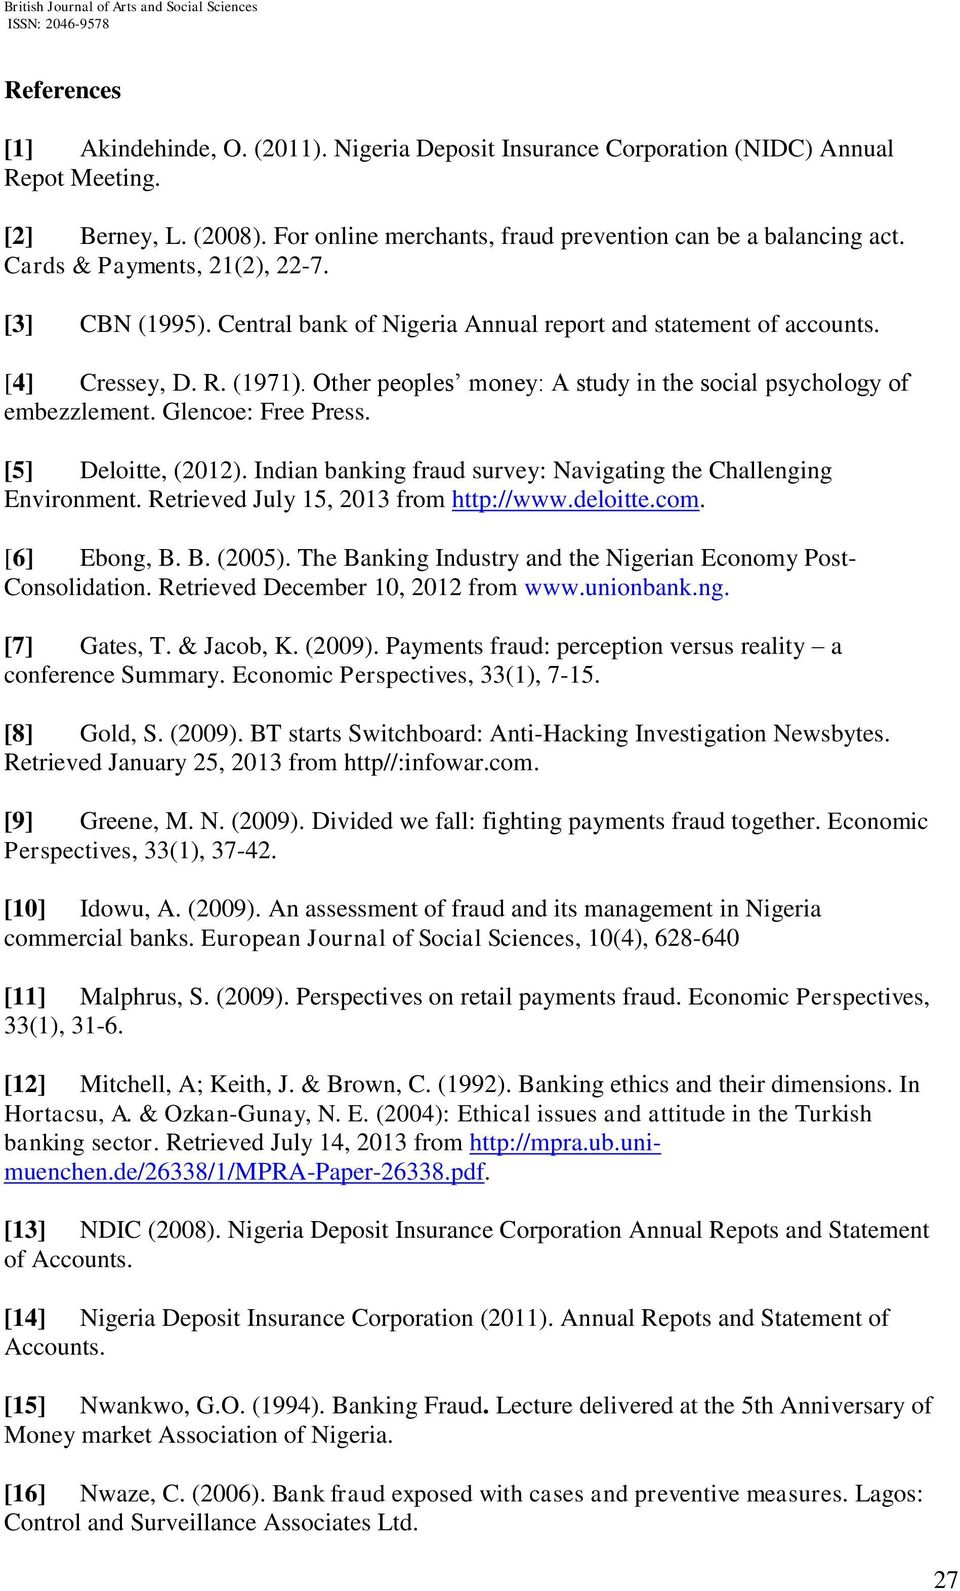 impact of international financial institutions on nigeria Relationship between corruption and bank profitability in nigeria  international ( a non governmental organization created in 1993), included 91 countries.